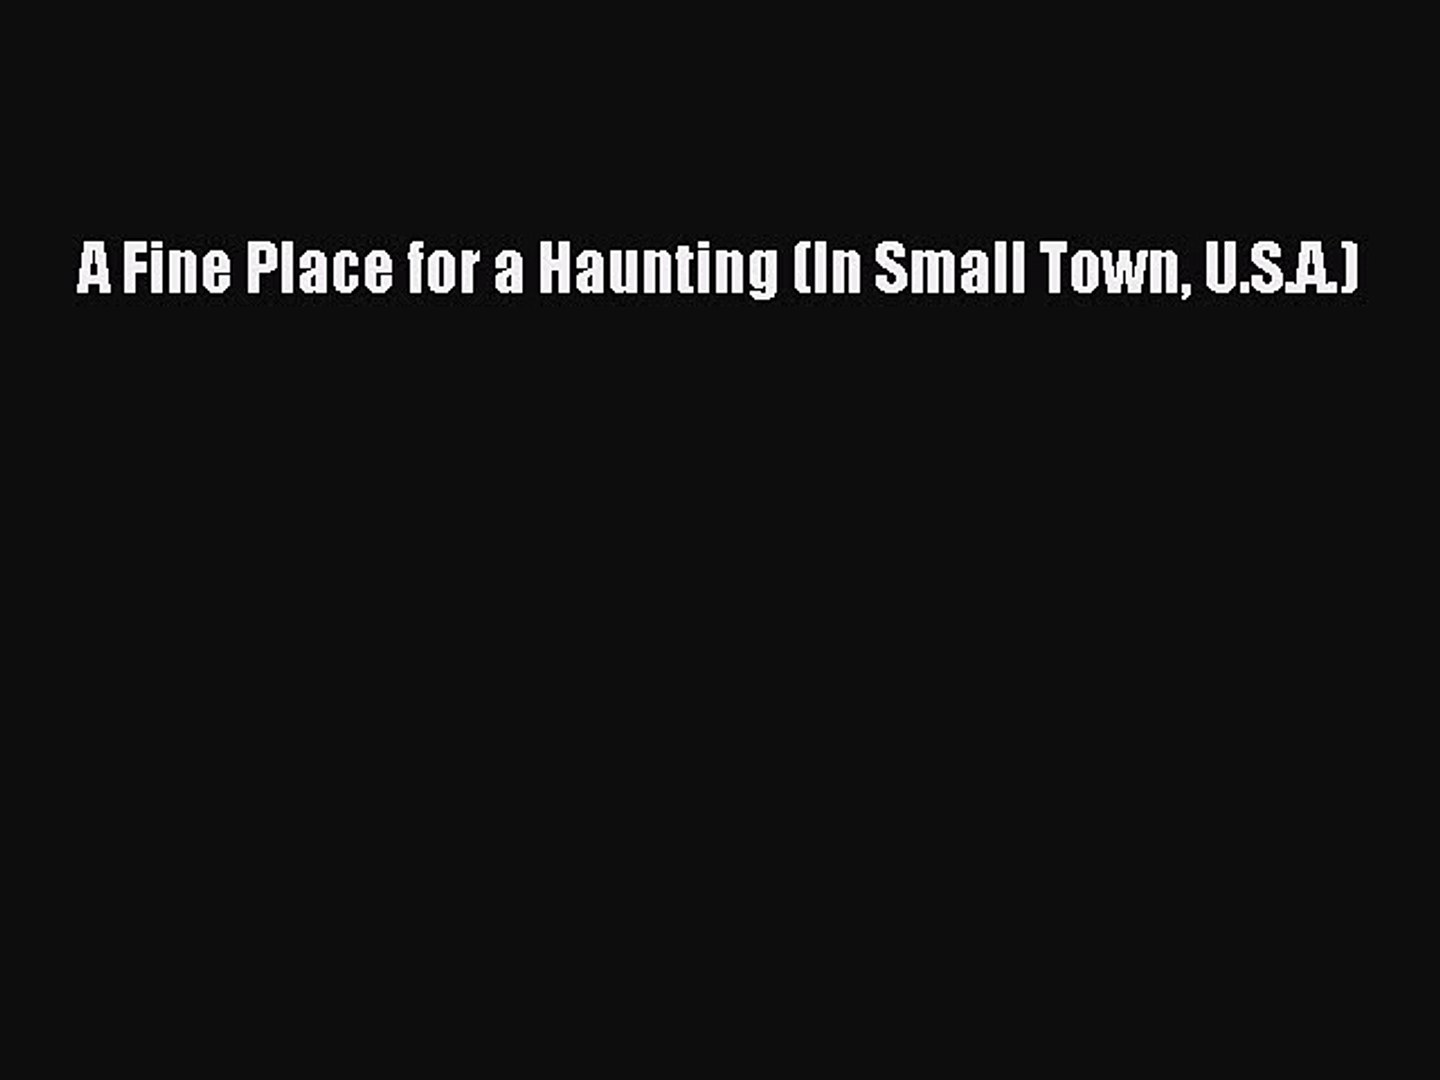 [PDF] A Fine Place for a Haunting (In Small Town U.S.A.) Read Online